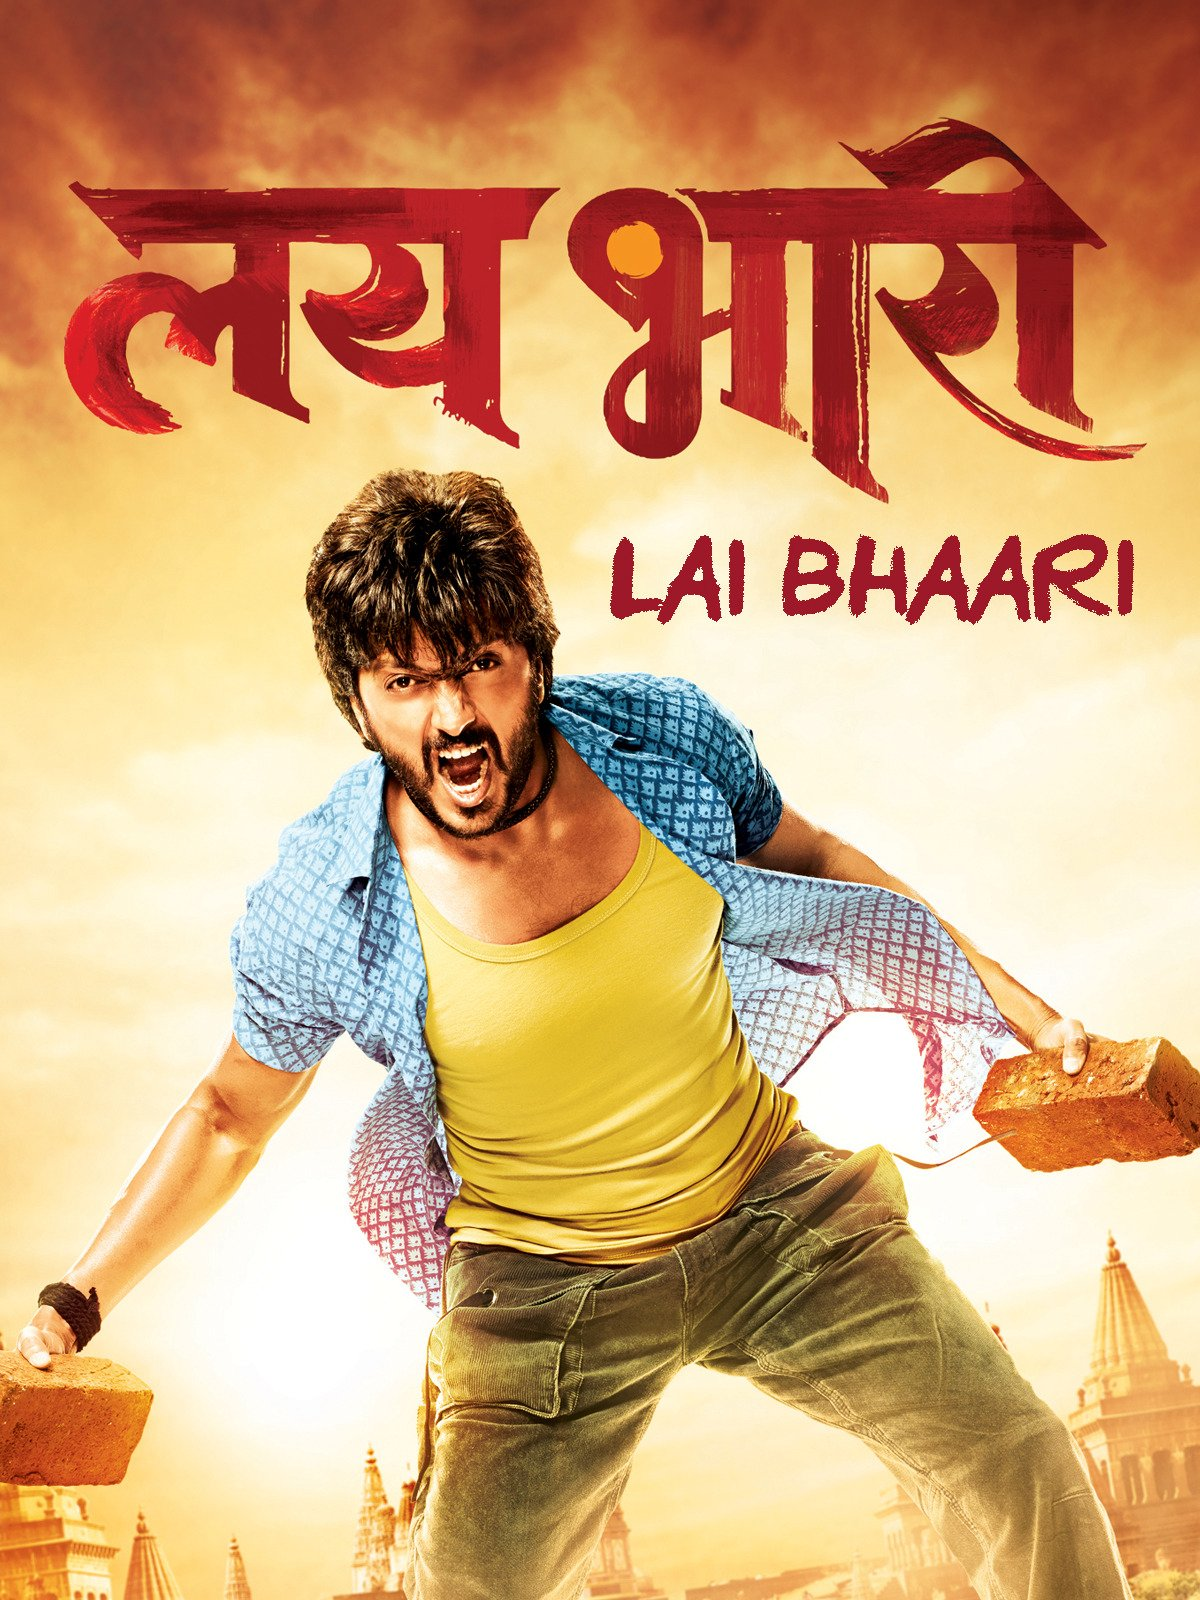 lai bhaari full movie in hindi dubbed free download